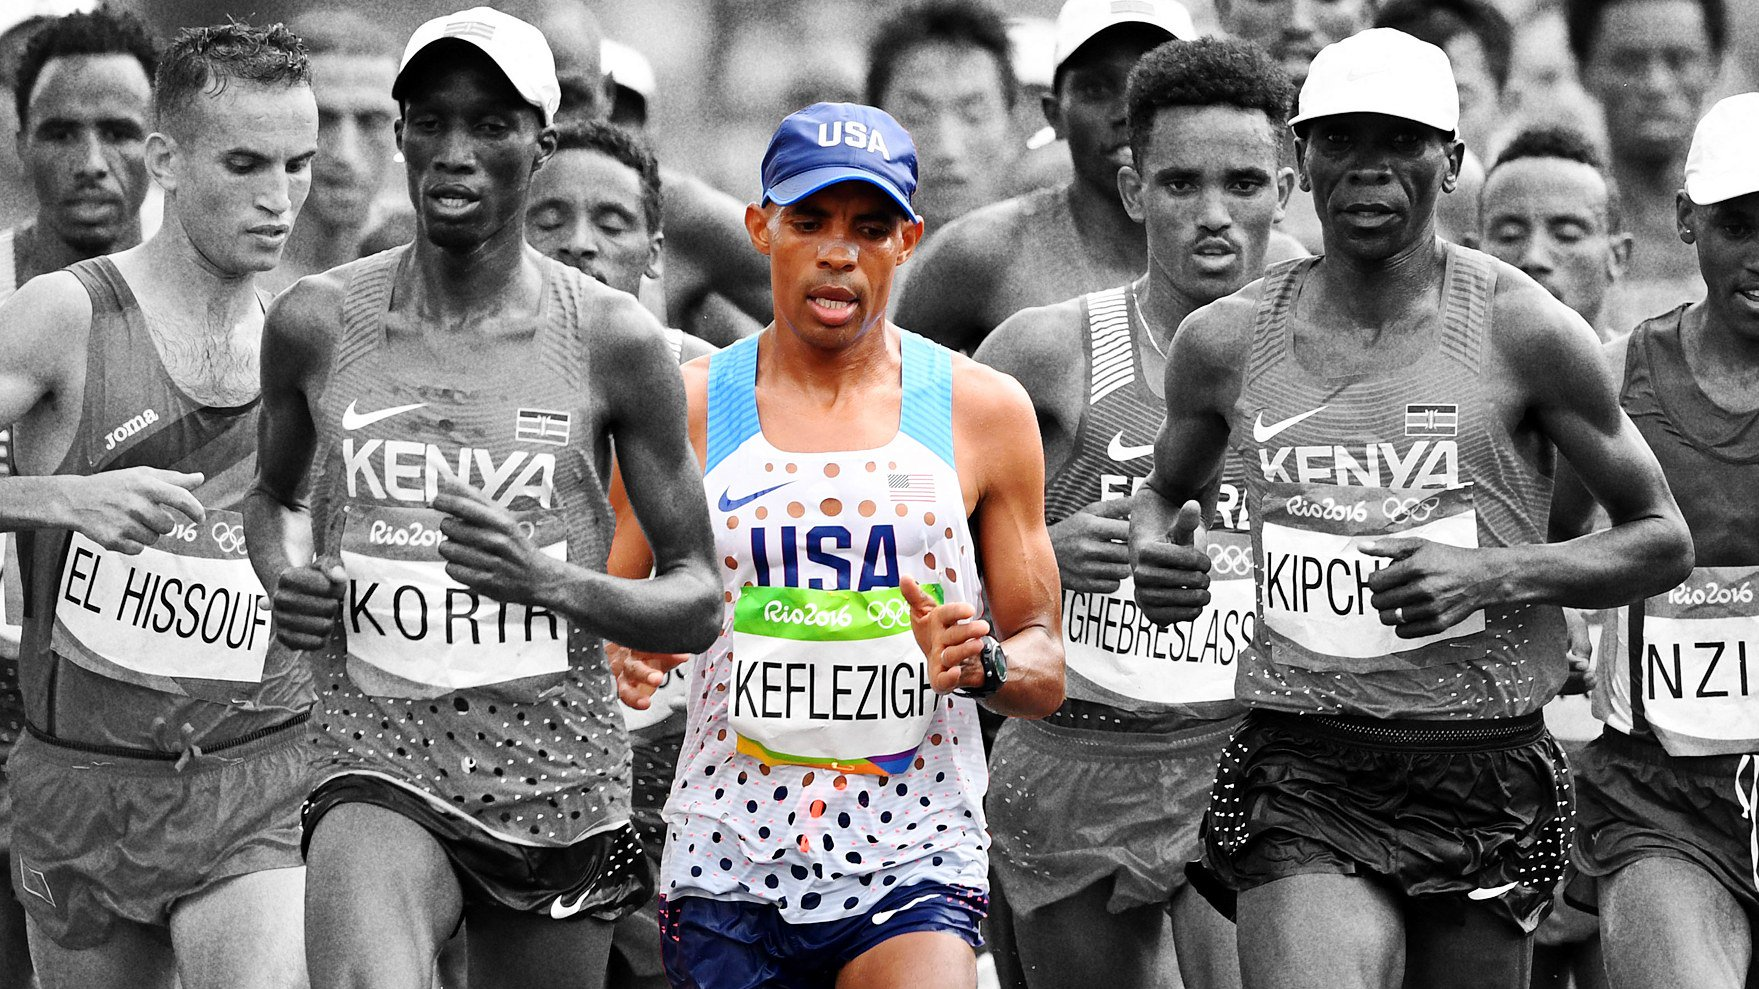 The real-life diet of @runmeb, who has eaten the same pre-marathon meal for 25 years https://t.co/HhviUwIYfw https://t.co/HLaer3qmx6